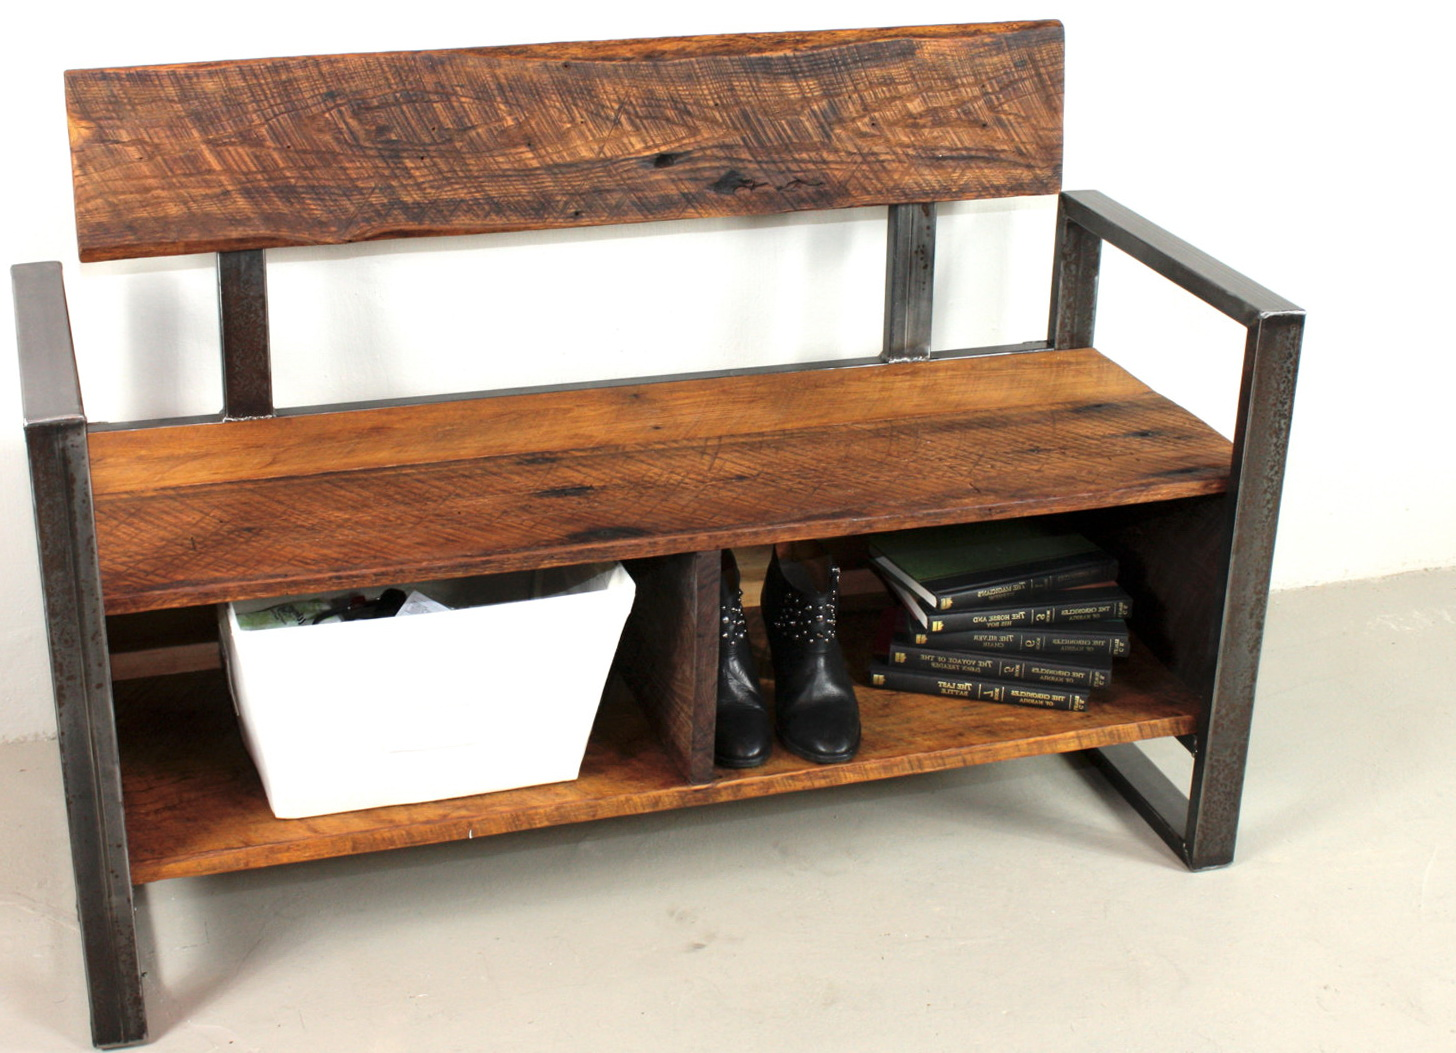 Reclaimed Wood Storage Bench